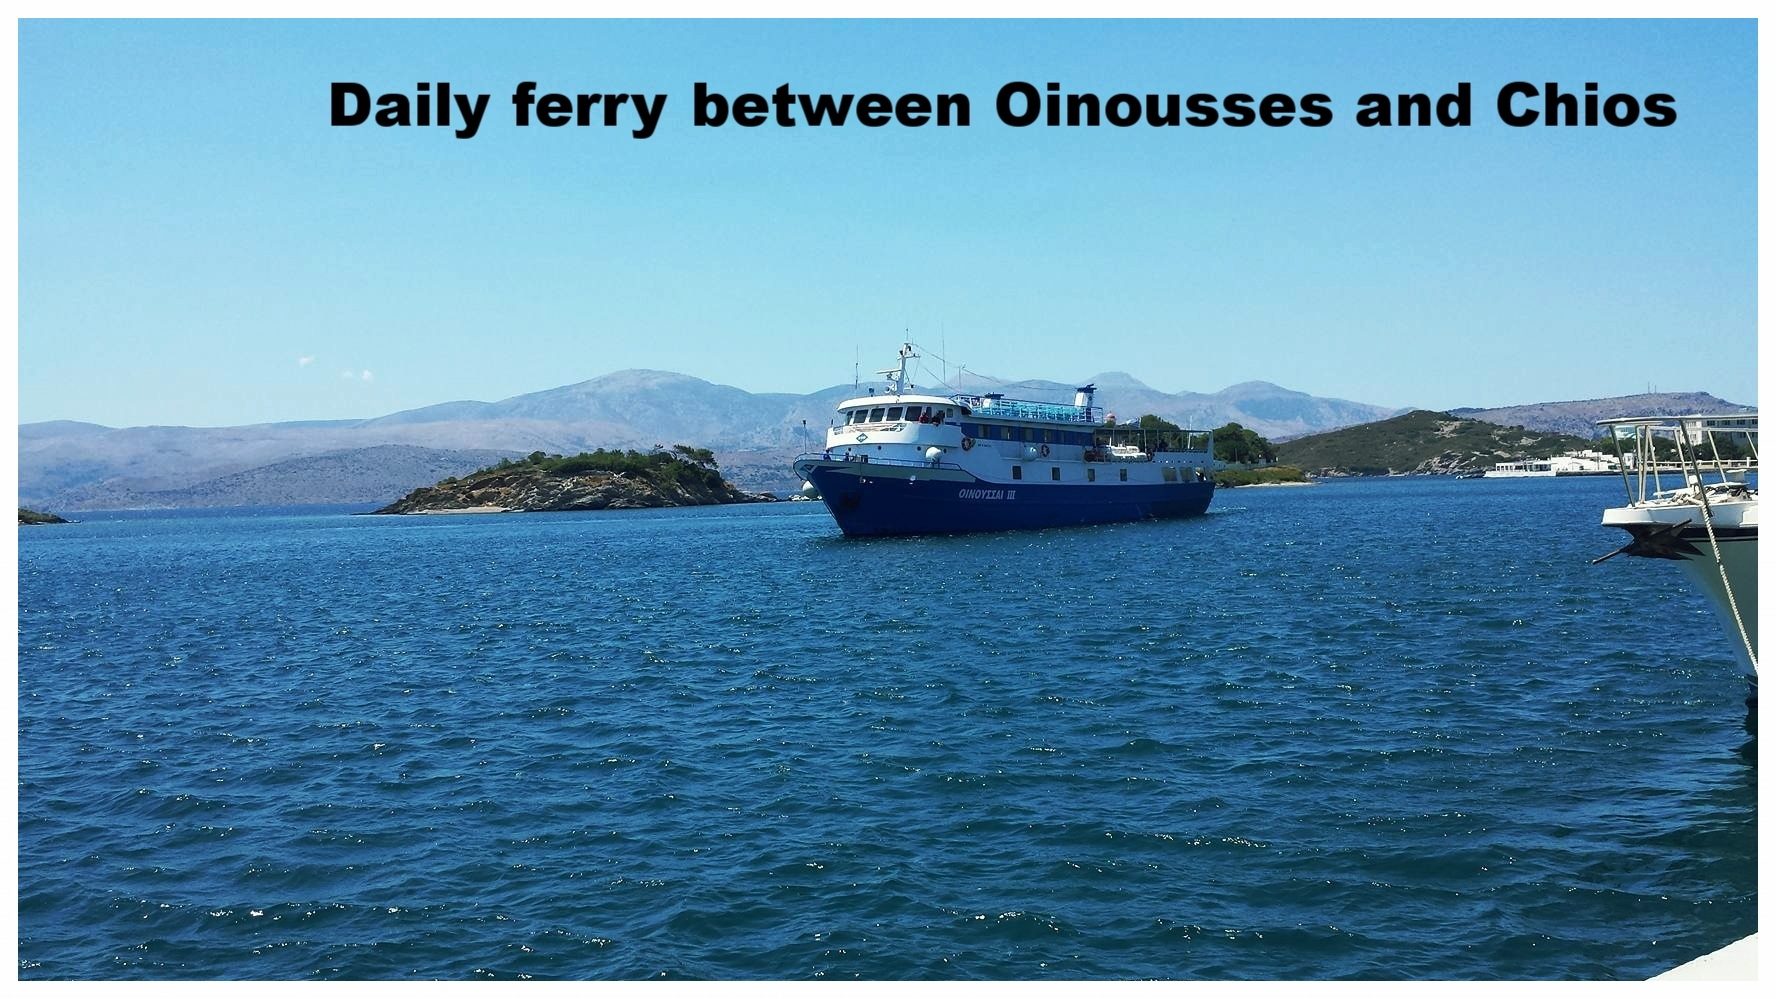 Daily ferry between Oinousses and Chios